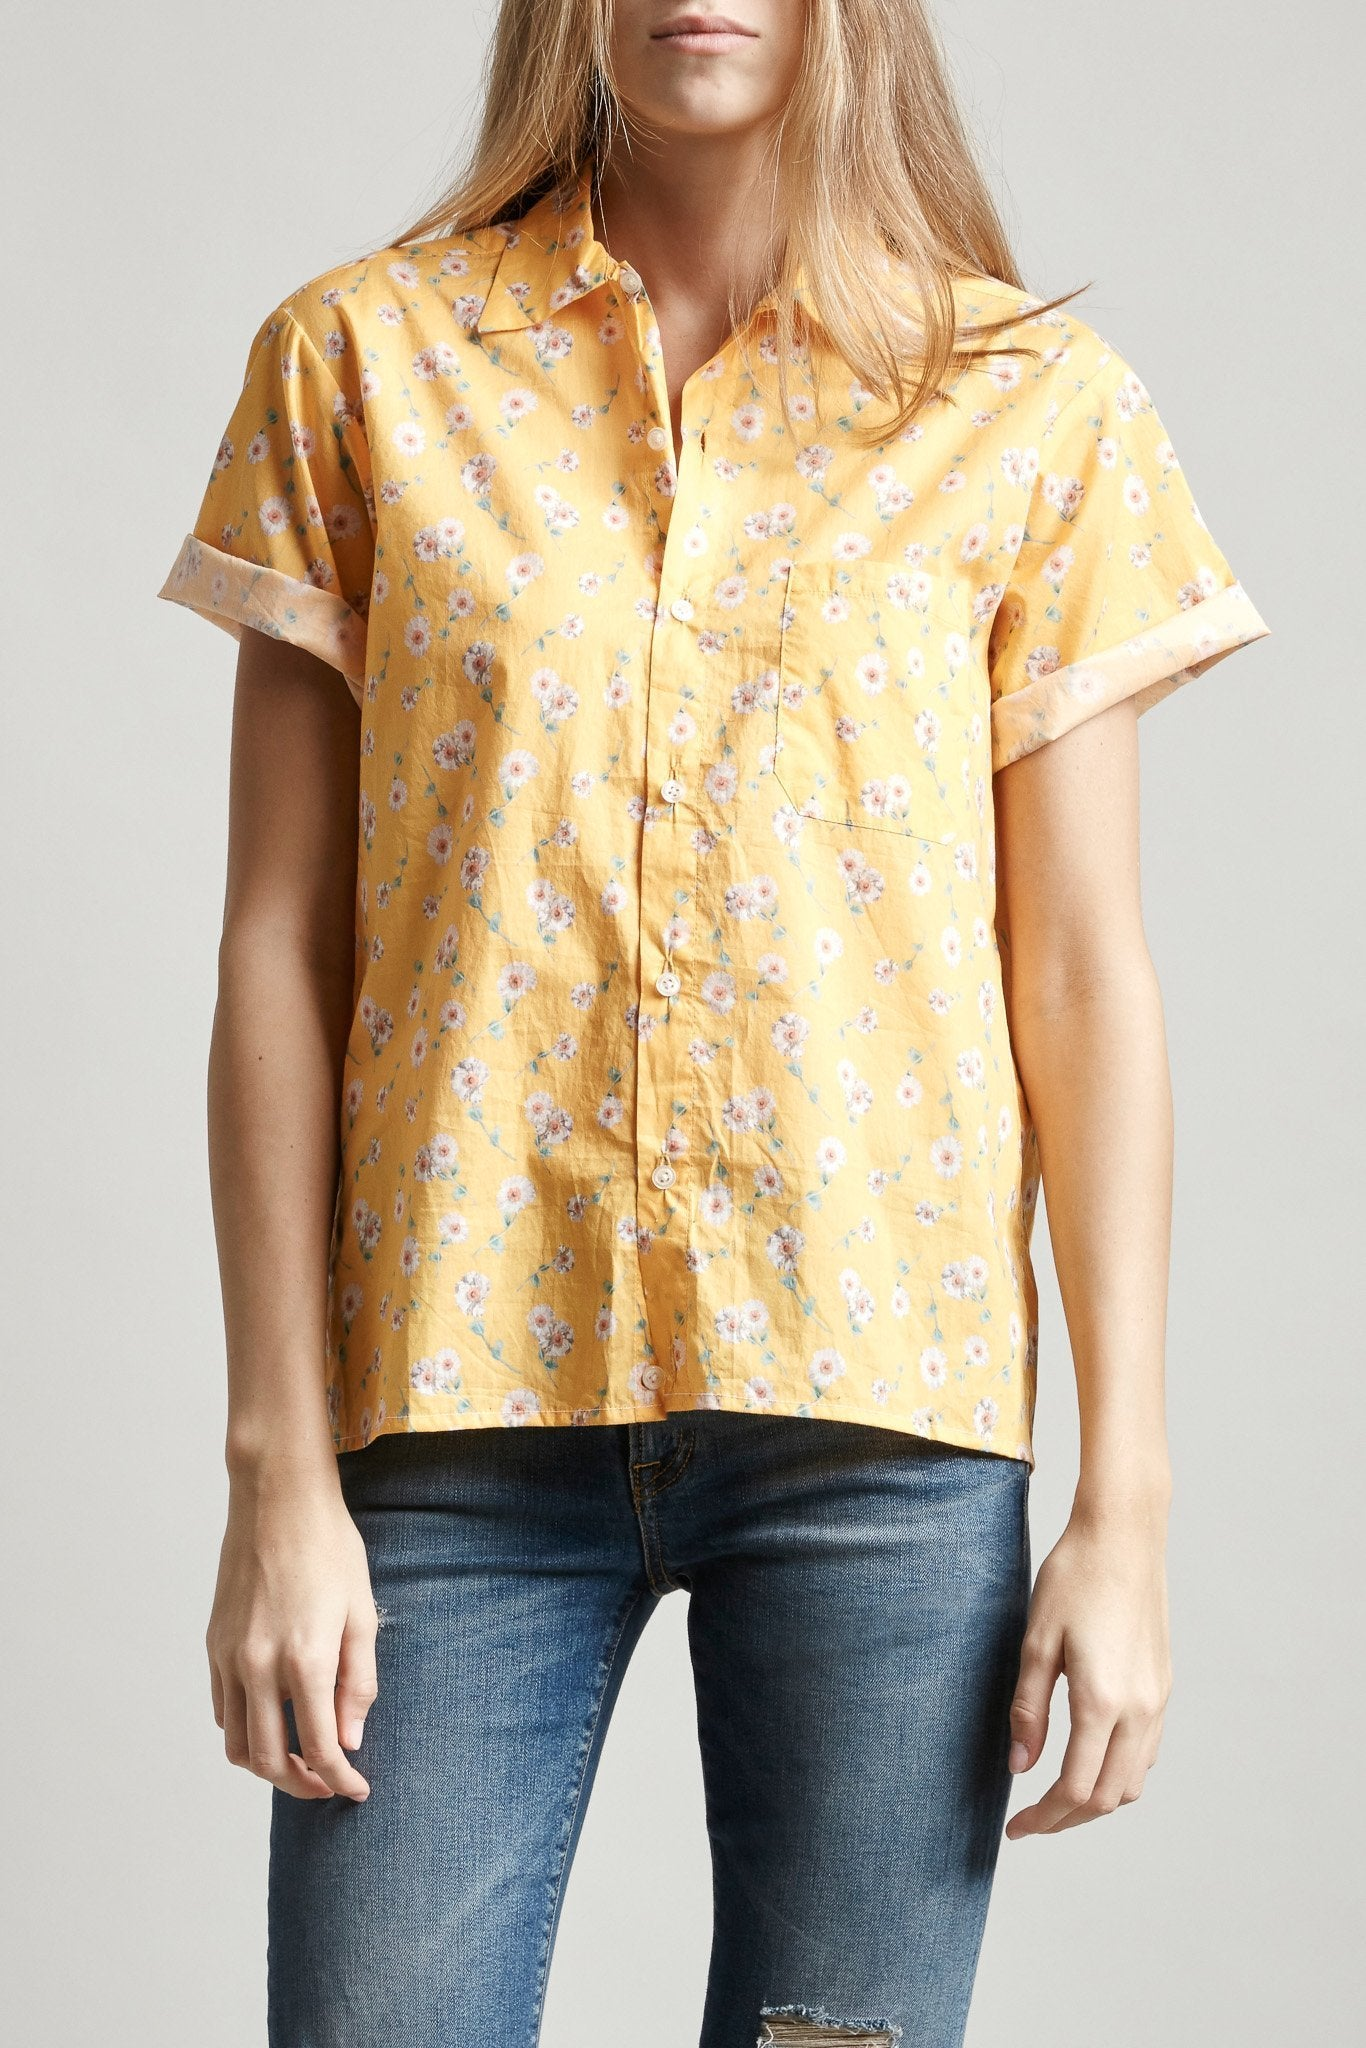 Skater Shirt - Yellow Daisy